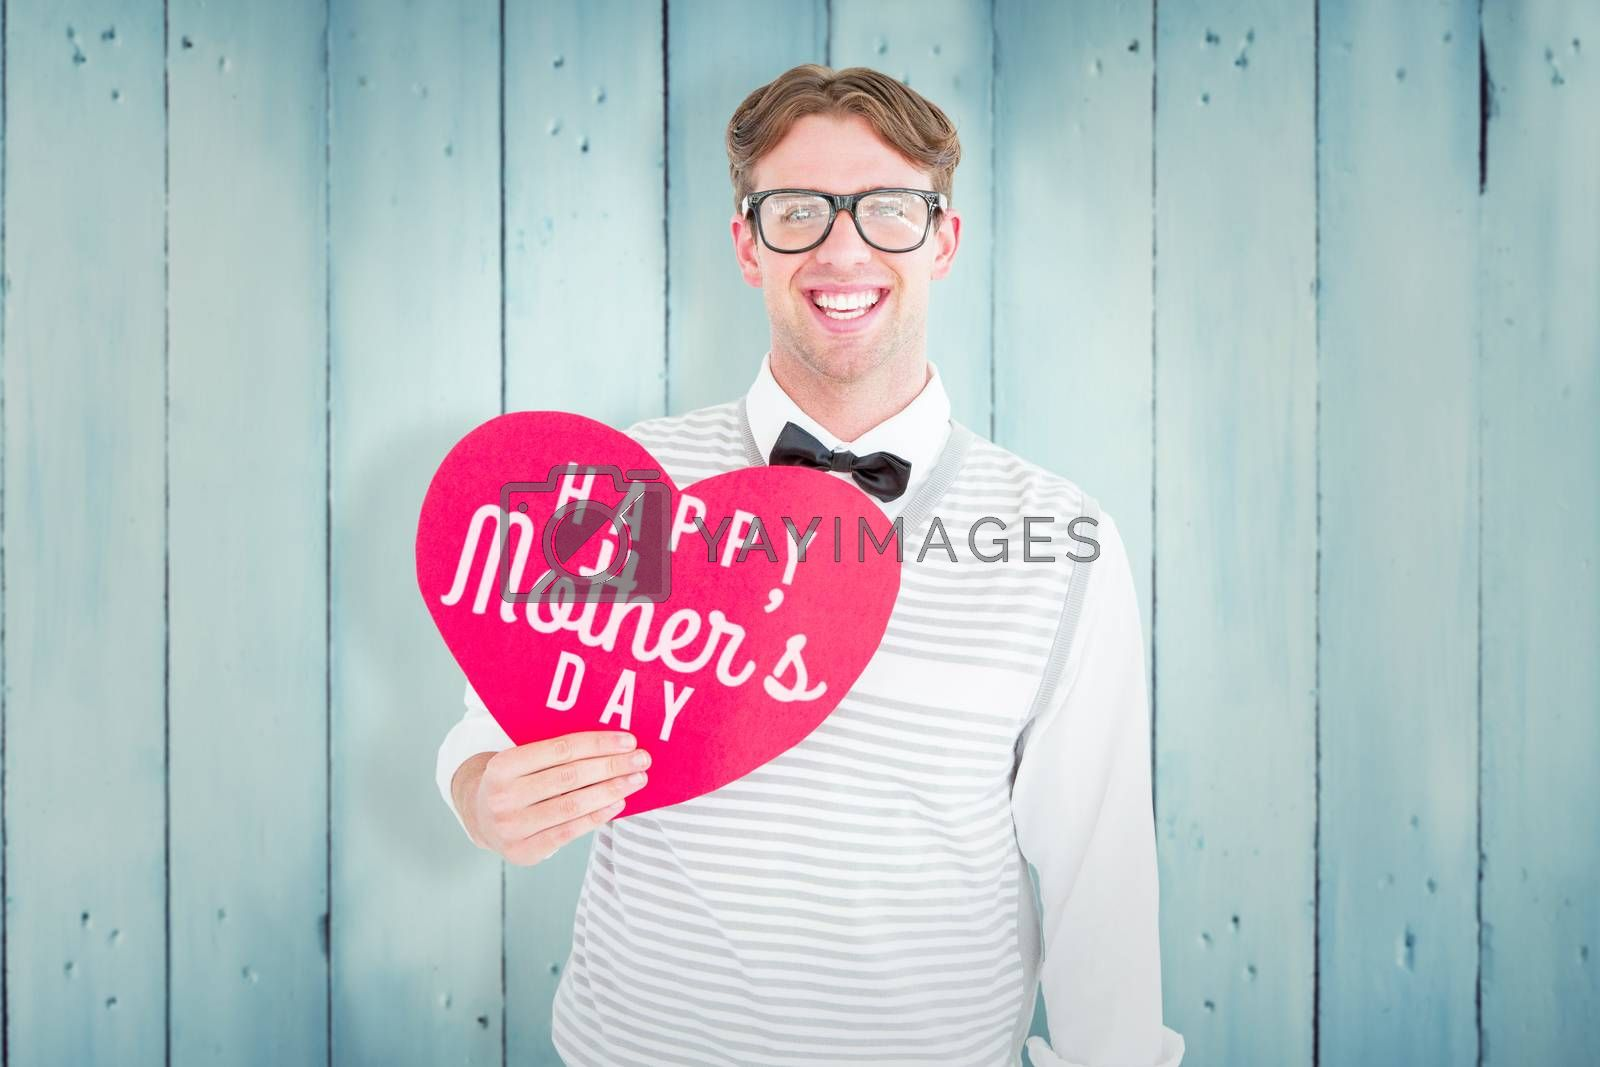 Geeky hipster holding heart card against wooden planks